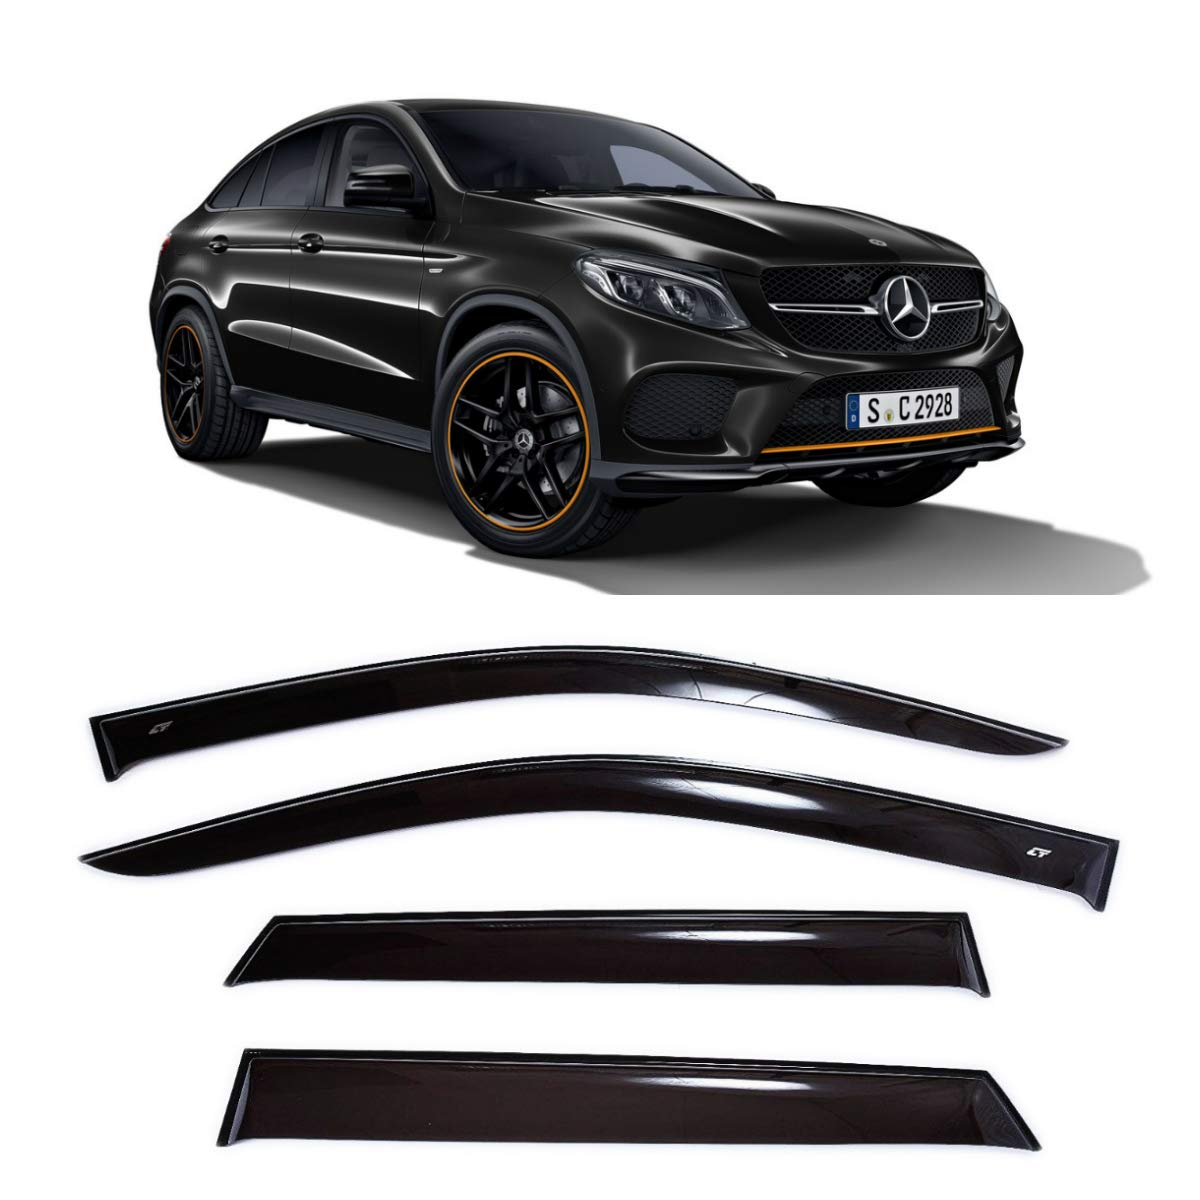 CT Wind Visor Deflectors Set of 4-Piece Car Ventvisor Door Side Window Air Guard Deflectors for Protection Against Snow Sun and Rain Compatible with Mercedes GLE Coupe C292 2015 Dark Smoke